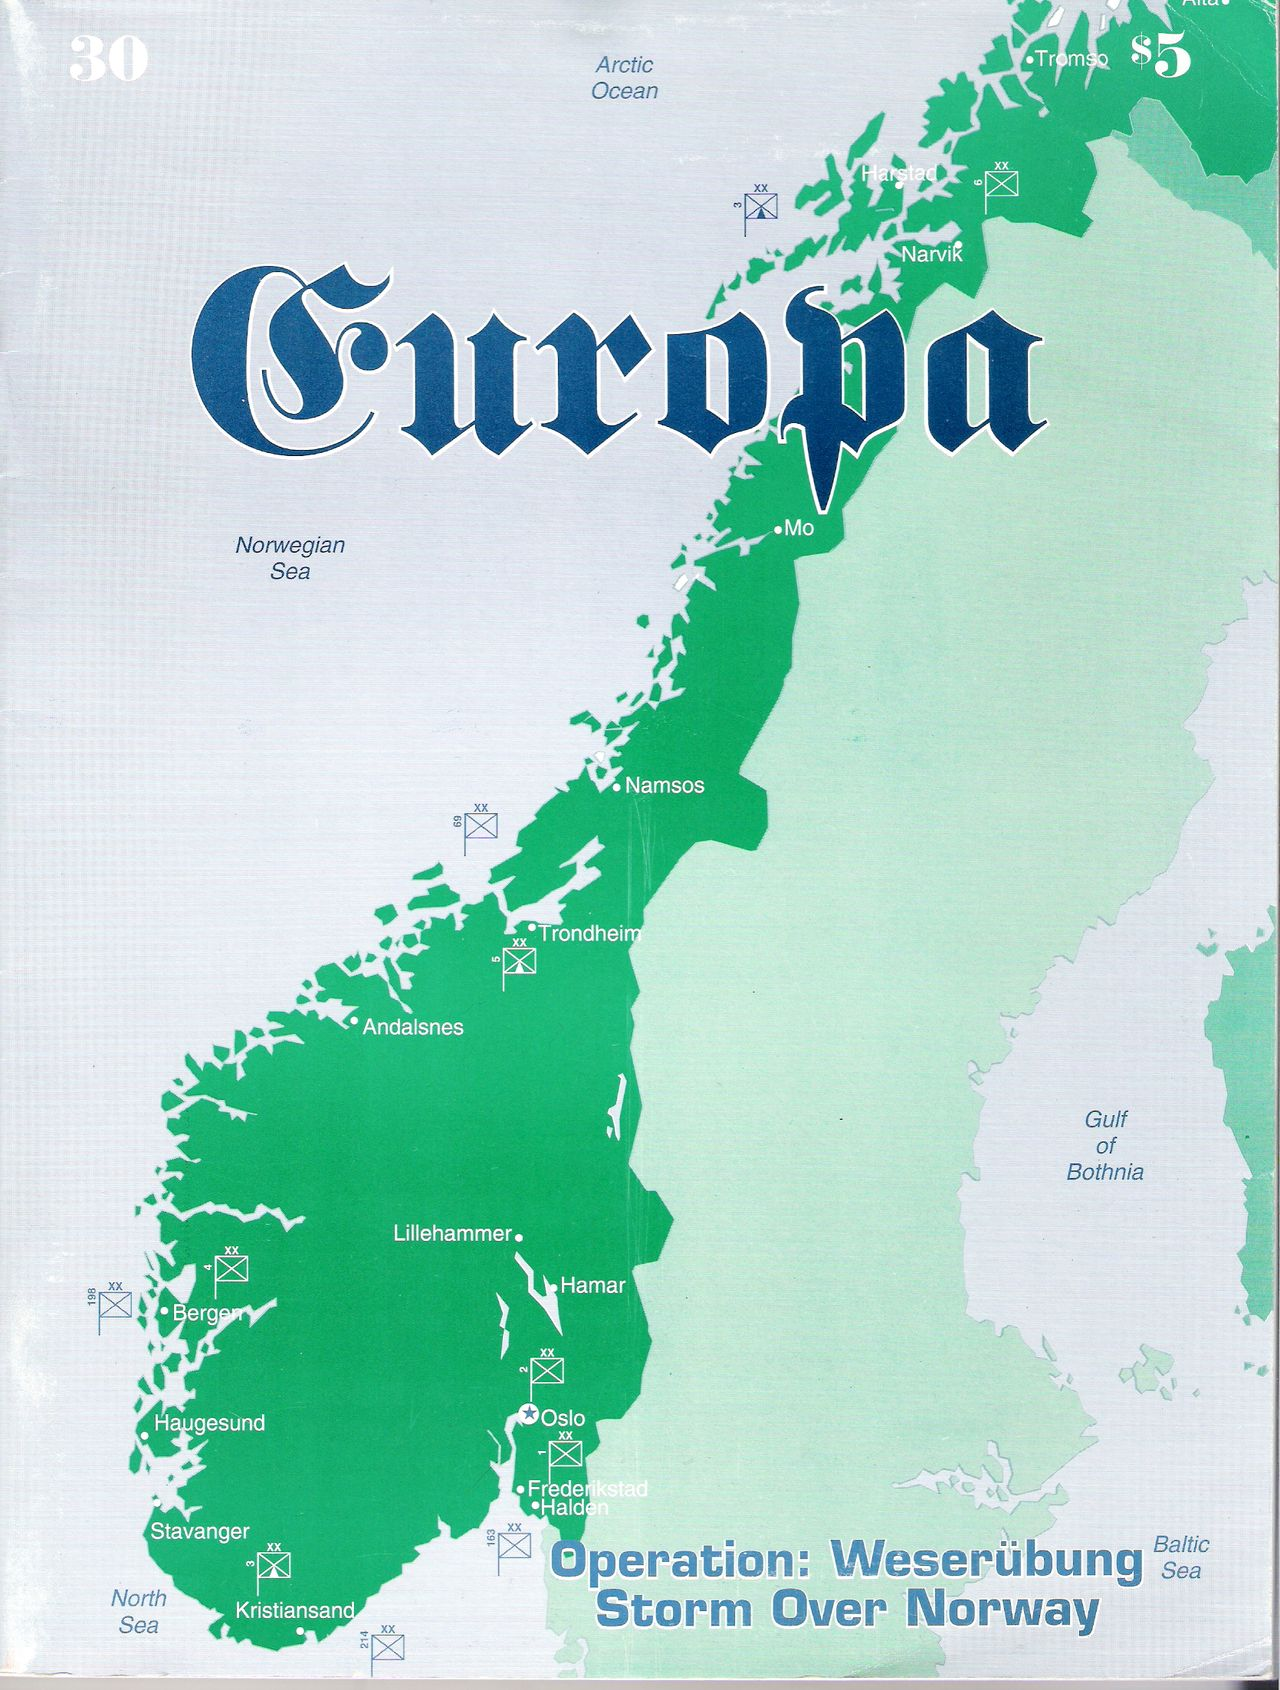 The Europa Magazine #30 - Cover